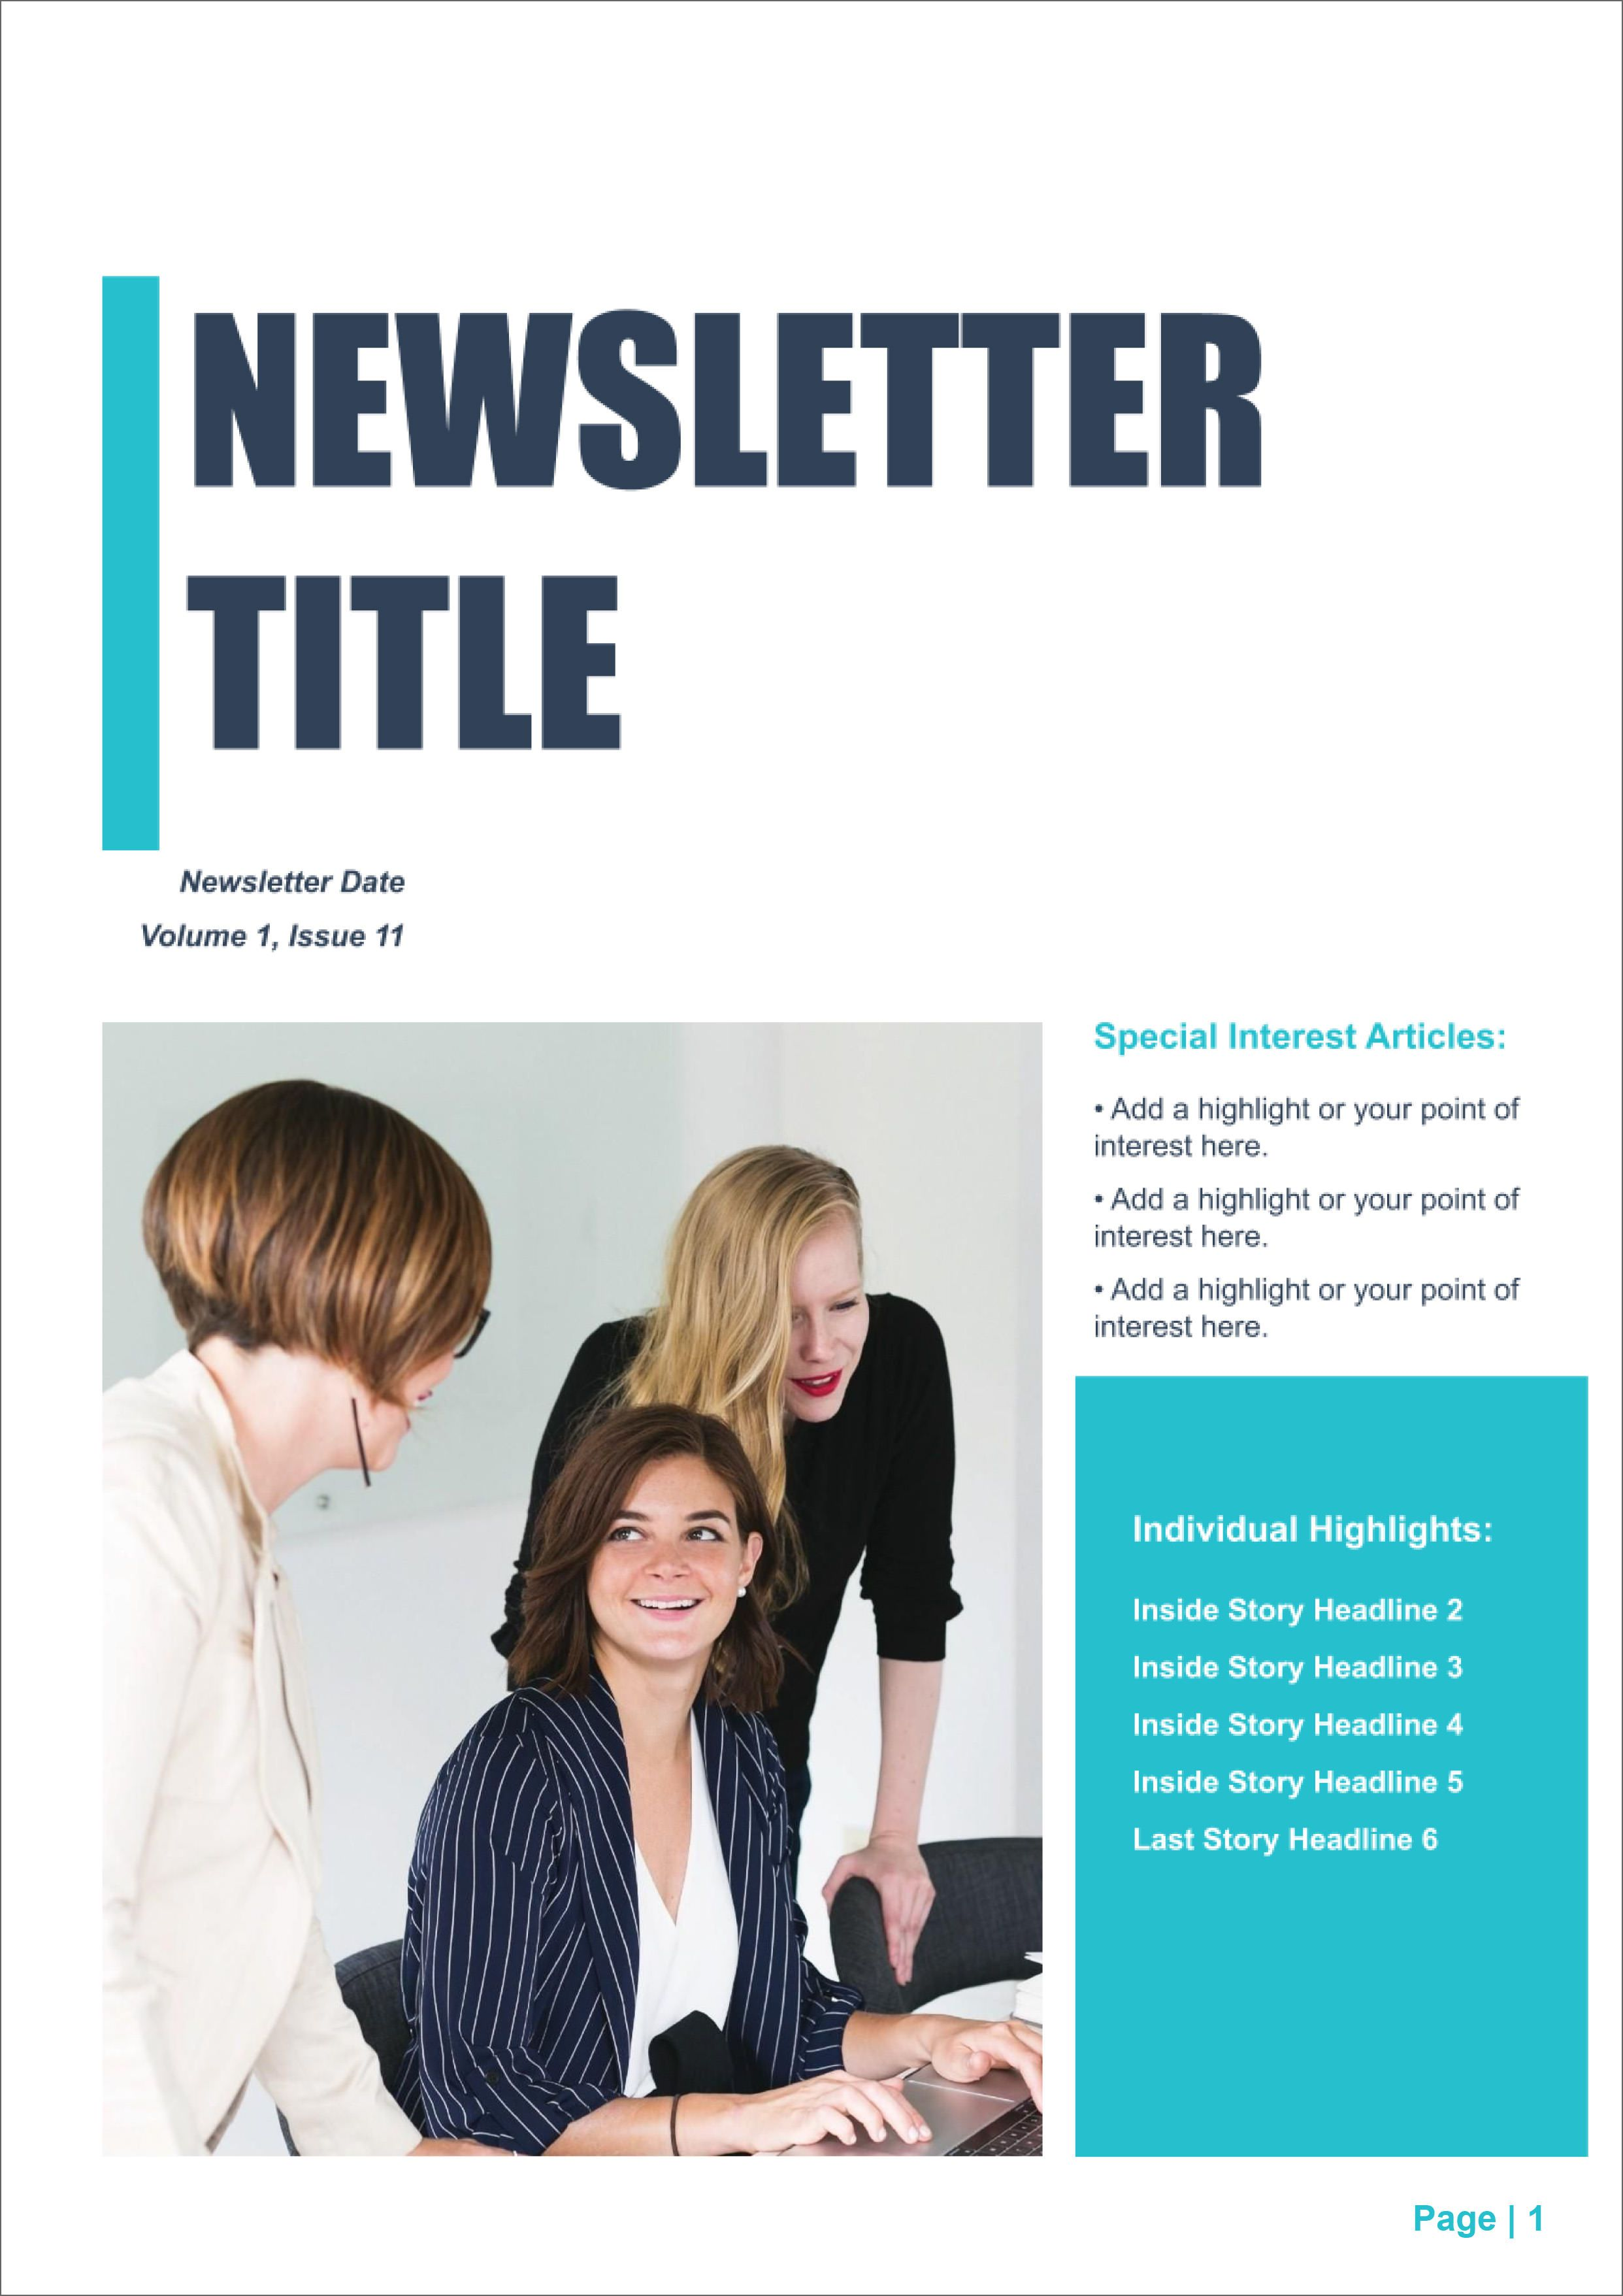 004 Simple High School Newsletter Template Free Download Inspiration Full